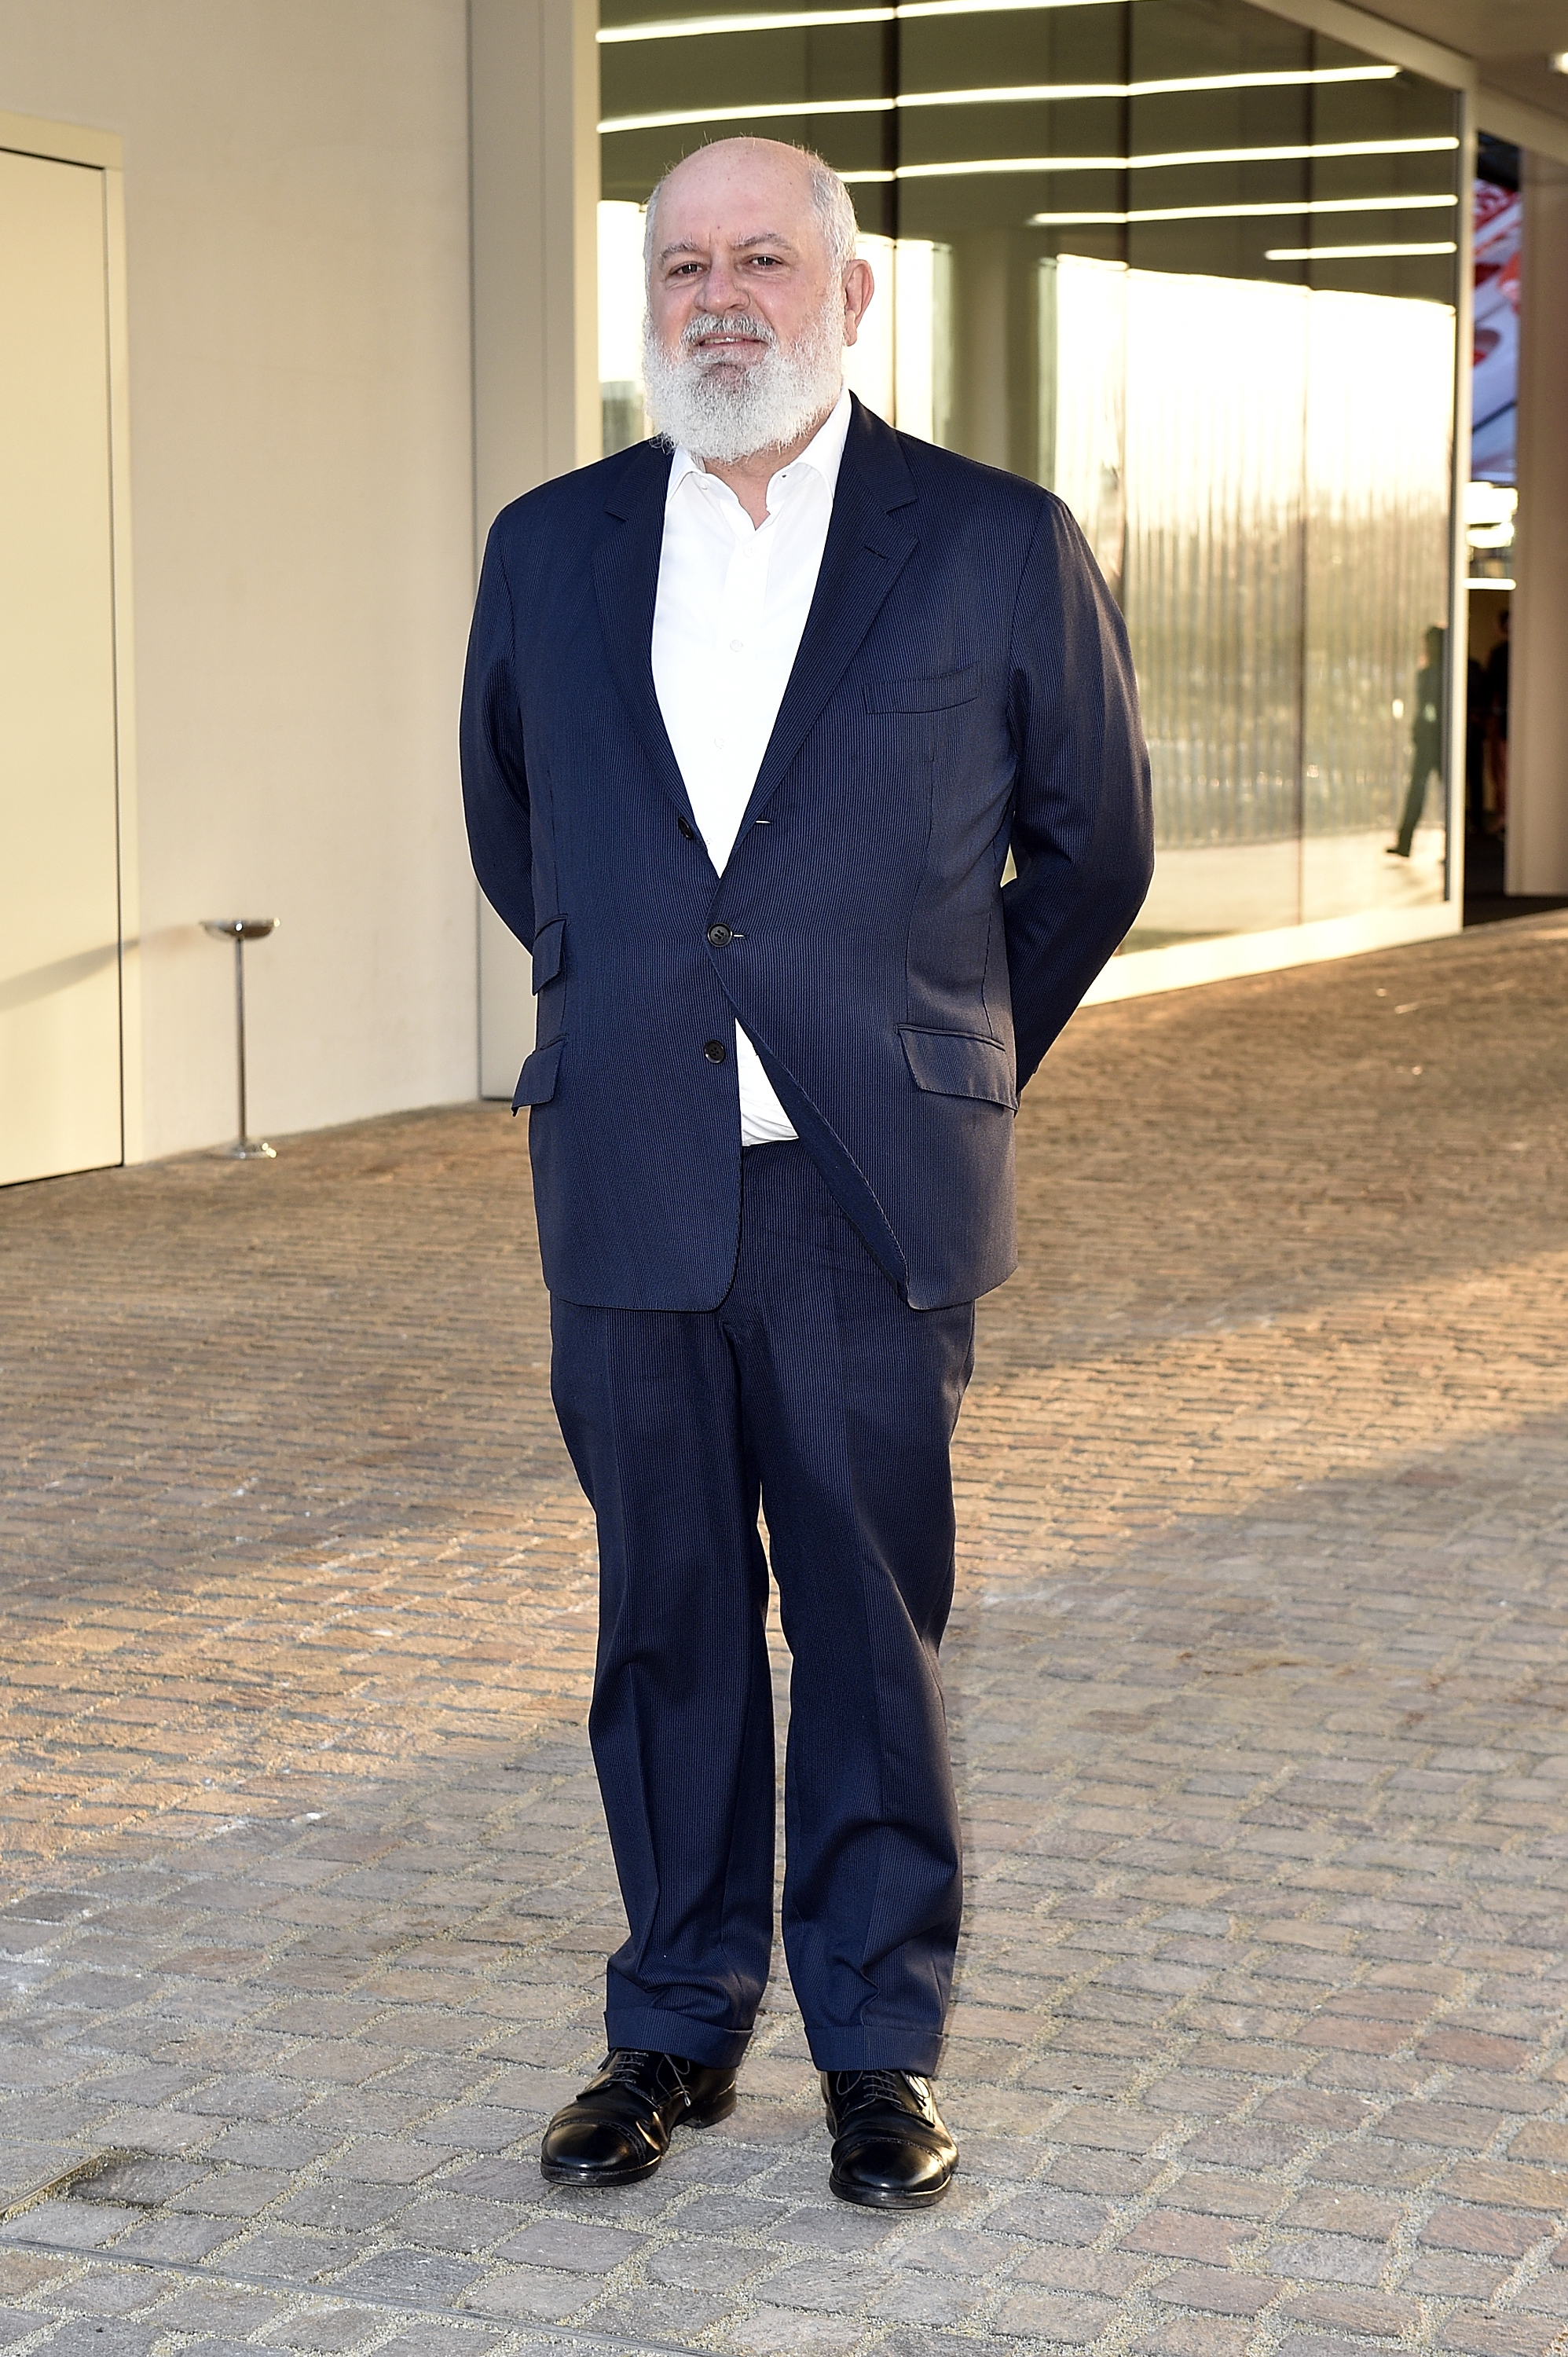 Massimo De Carlo à l'inauguration de la Torre à la Fondazione Prada le 18 avril 2018 à Milan, Italie. (Photo by Pietro D'Aprano/Getty Images for Fondazione Prada)